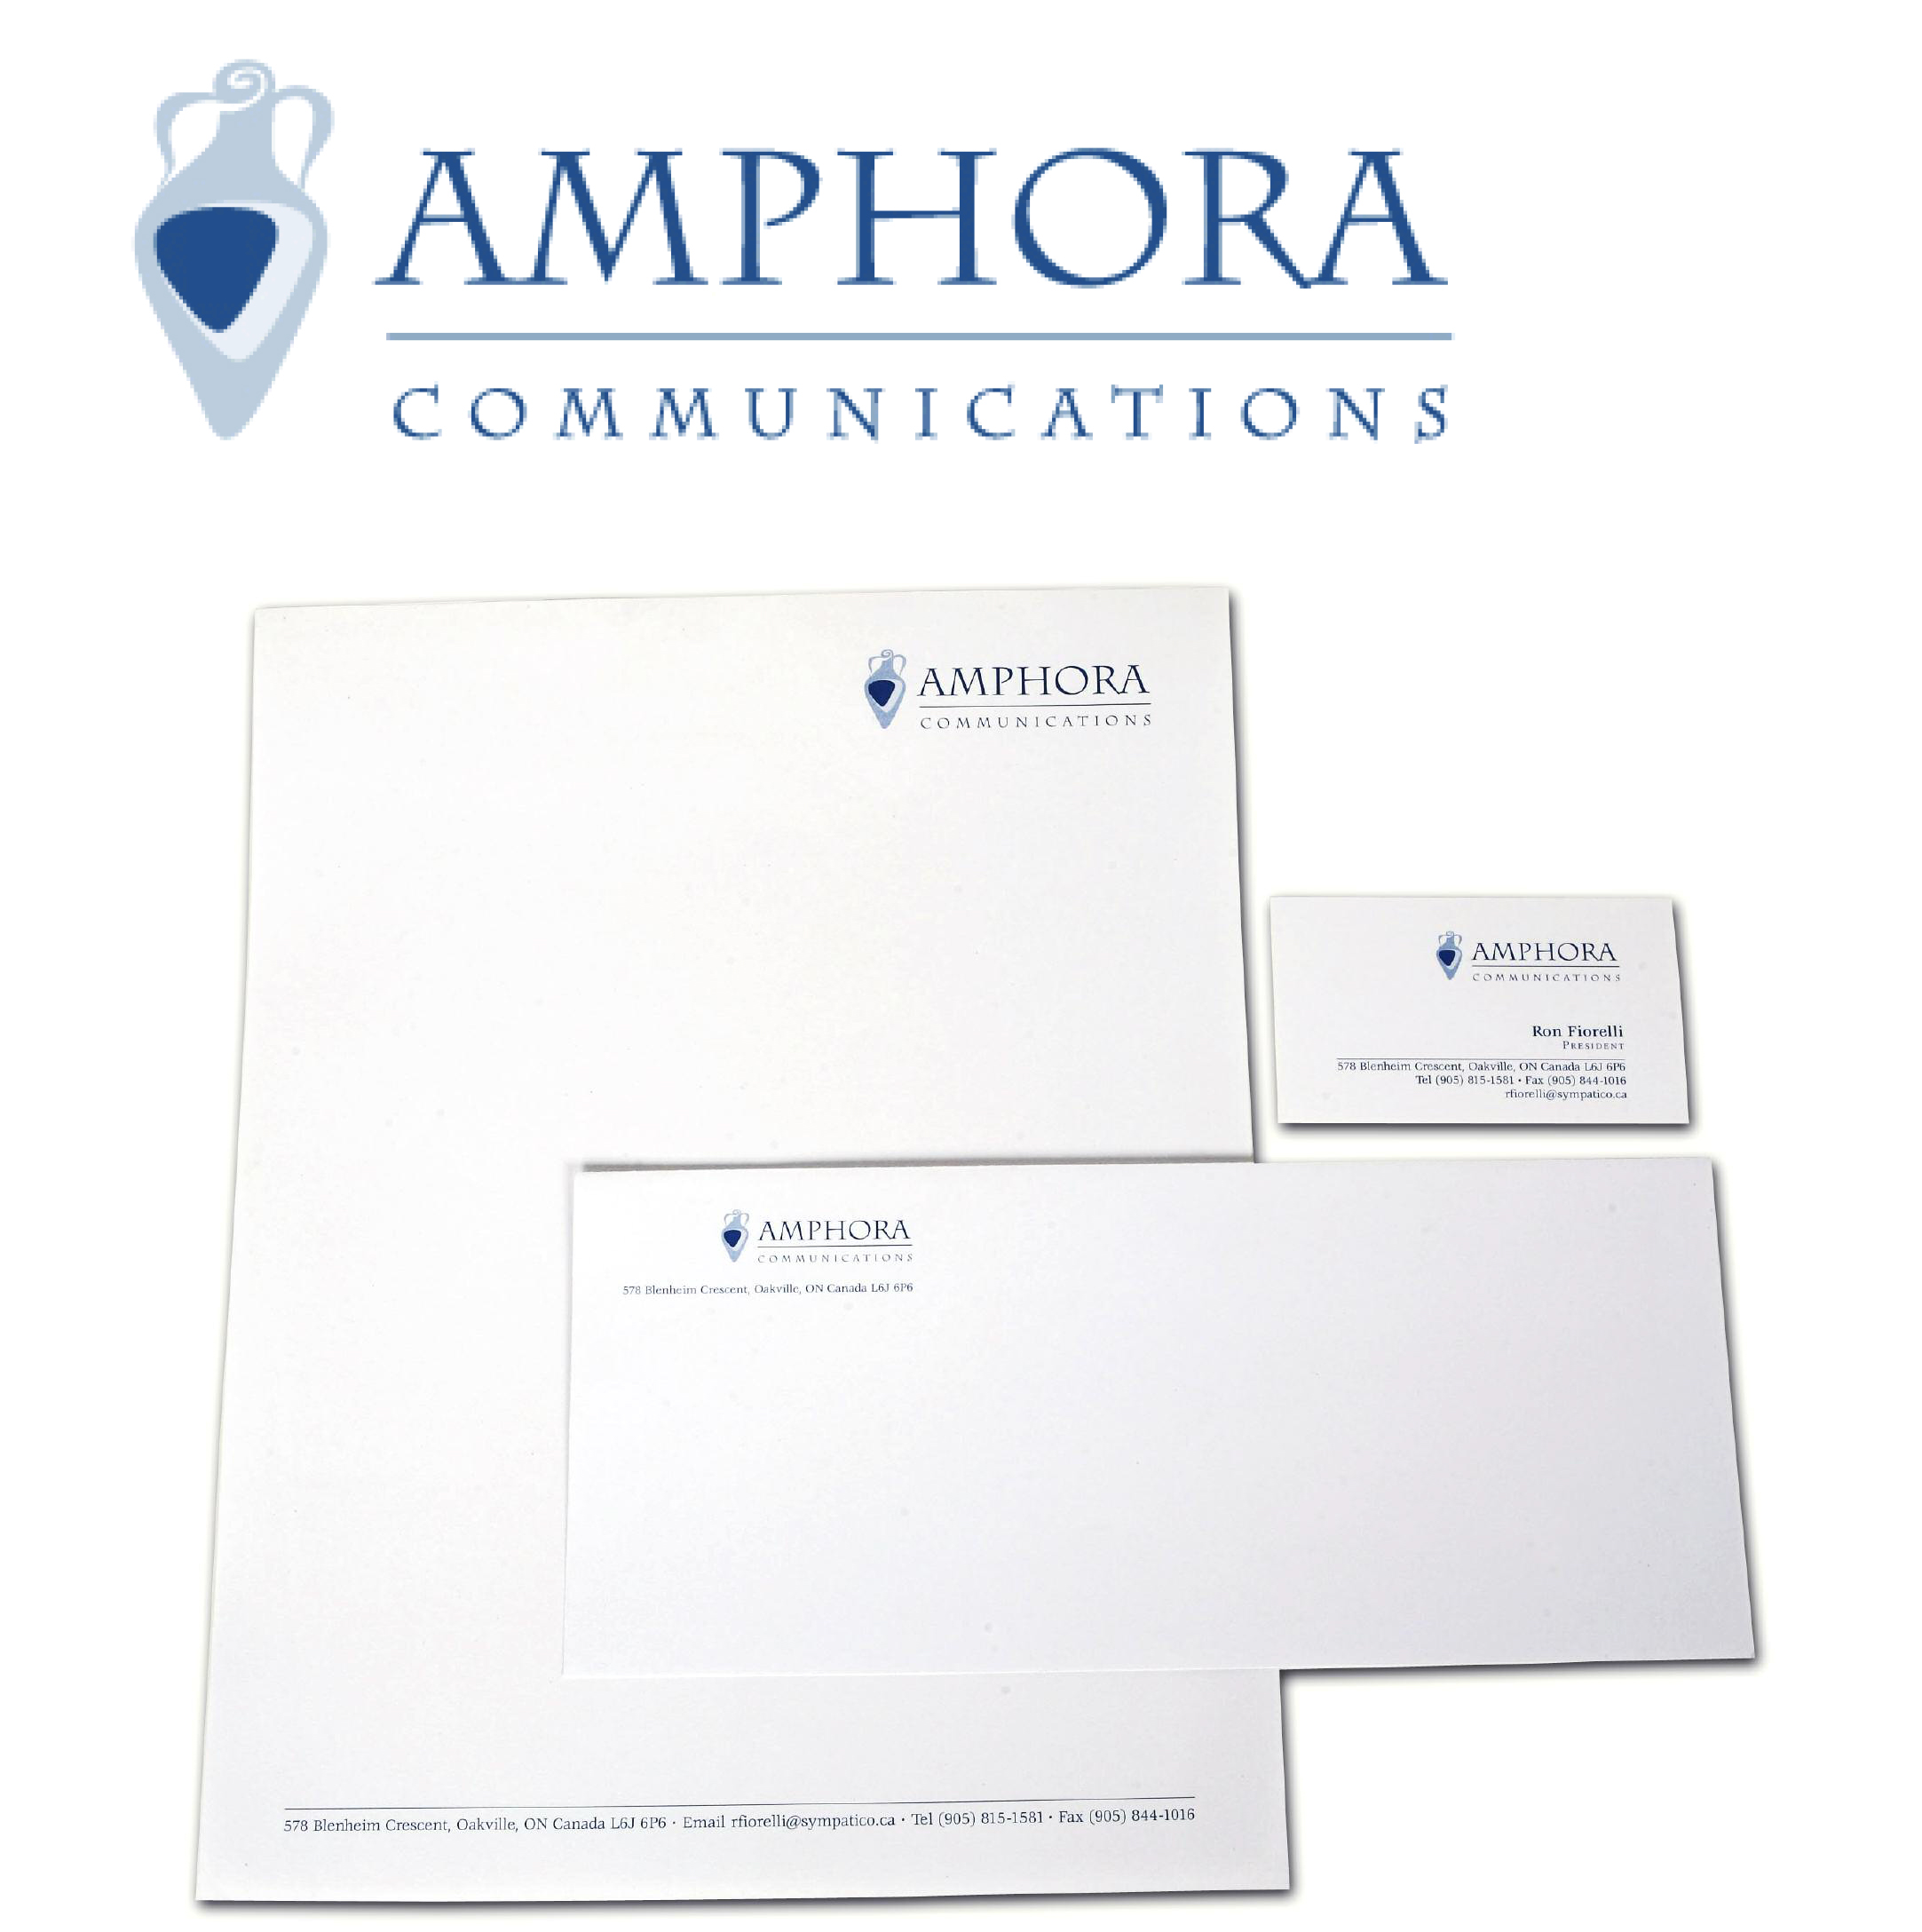 Amphora Communications